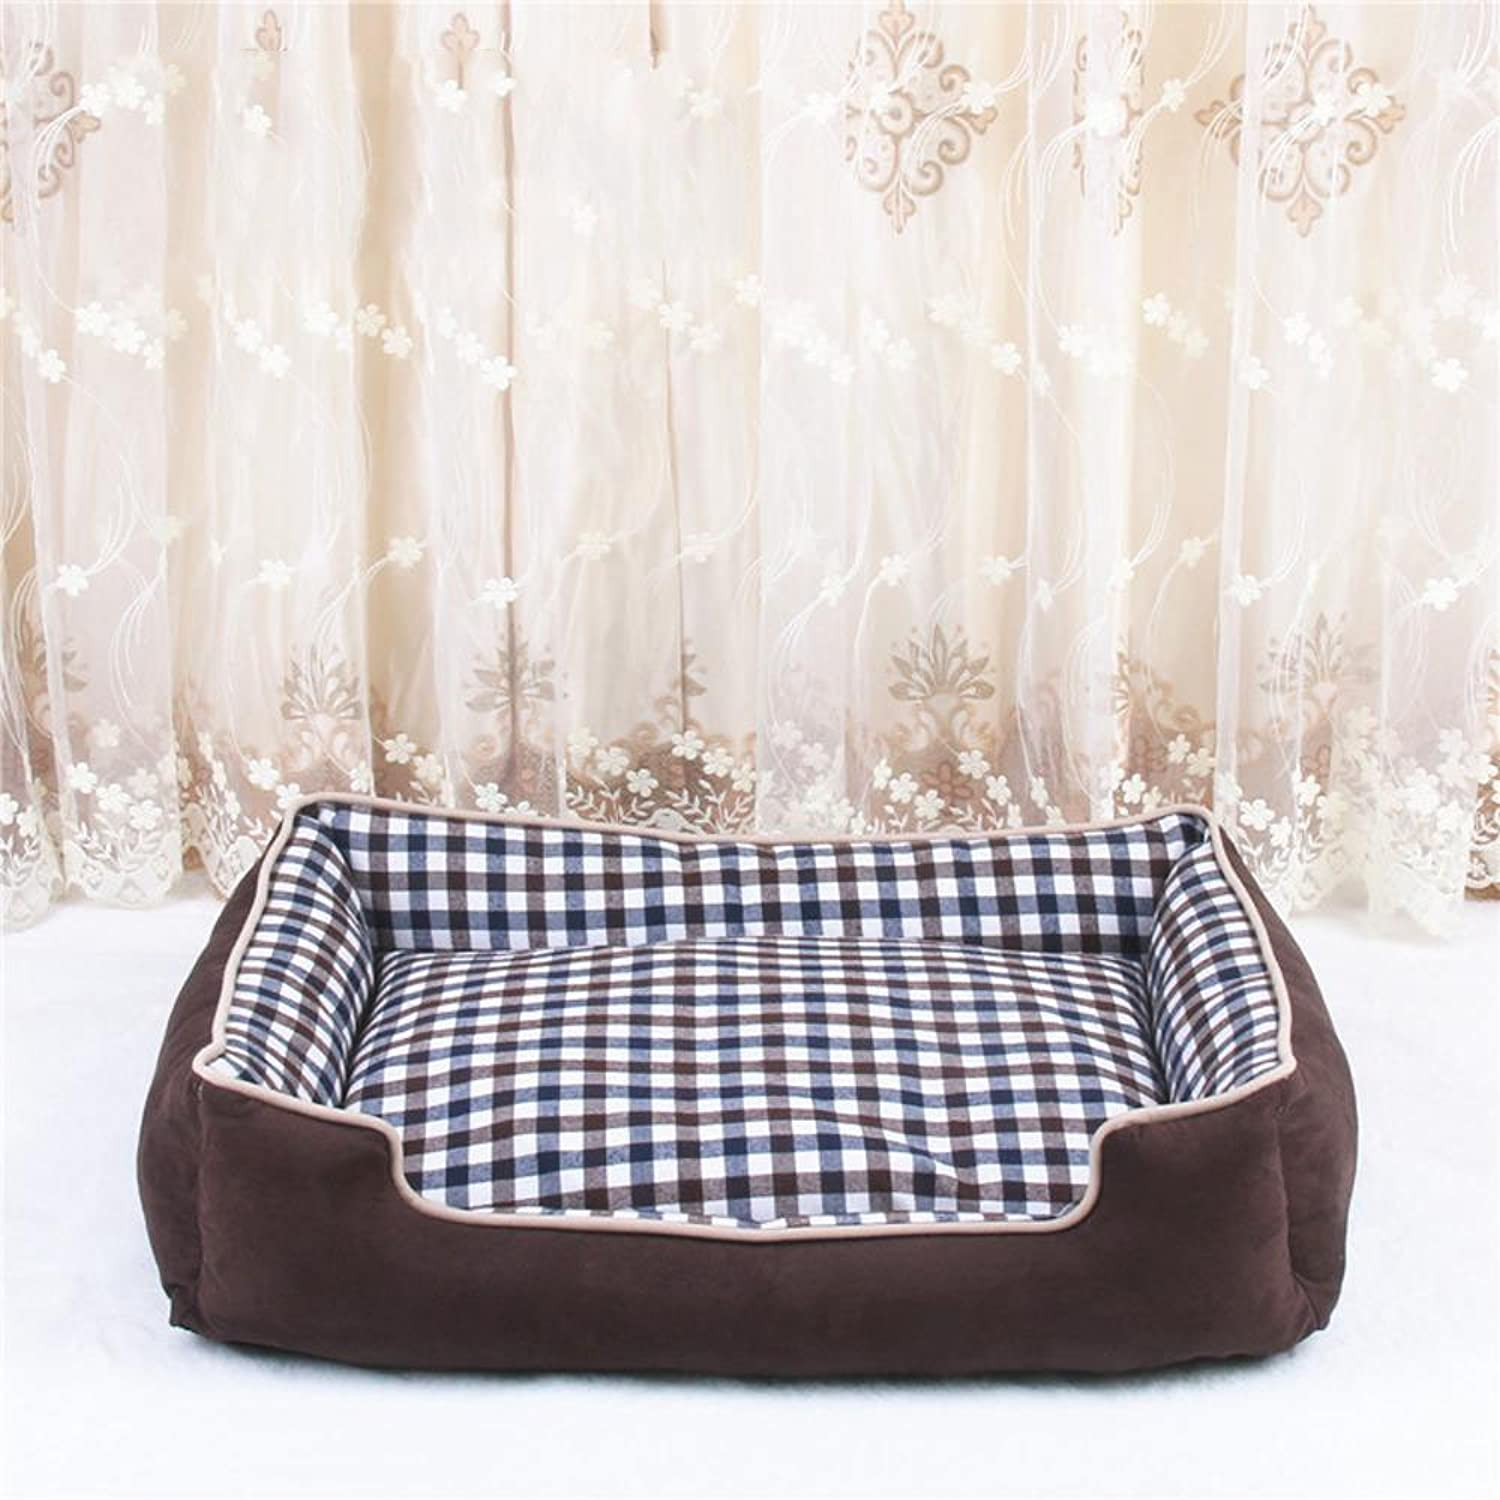 BiuTeFang Pet Bolster Dog Bed Comfort Kennel mat washable dog bed pet nest